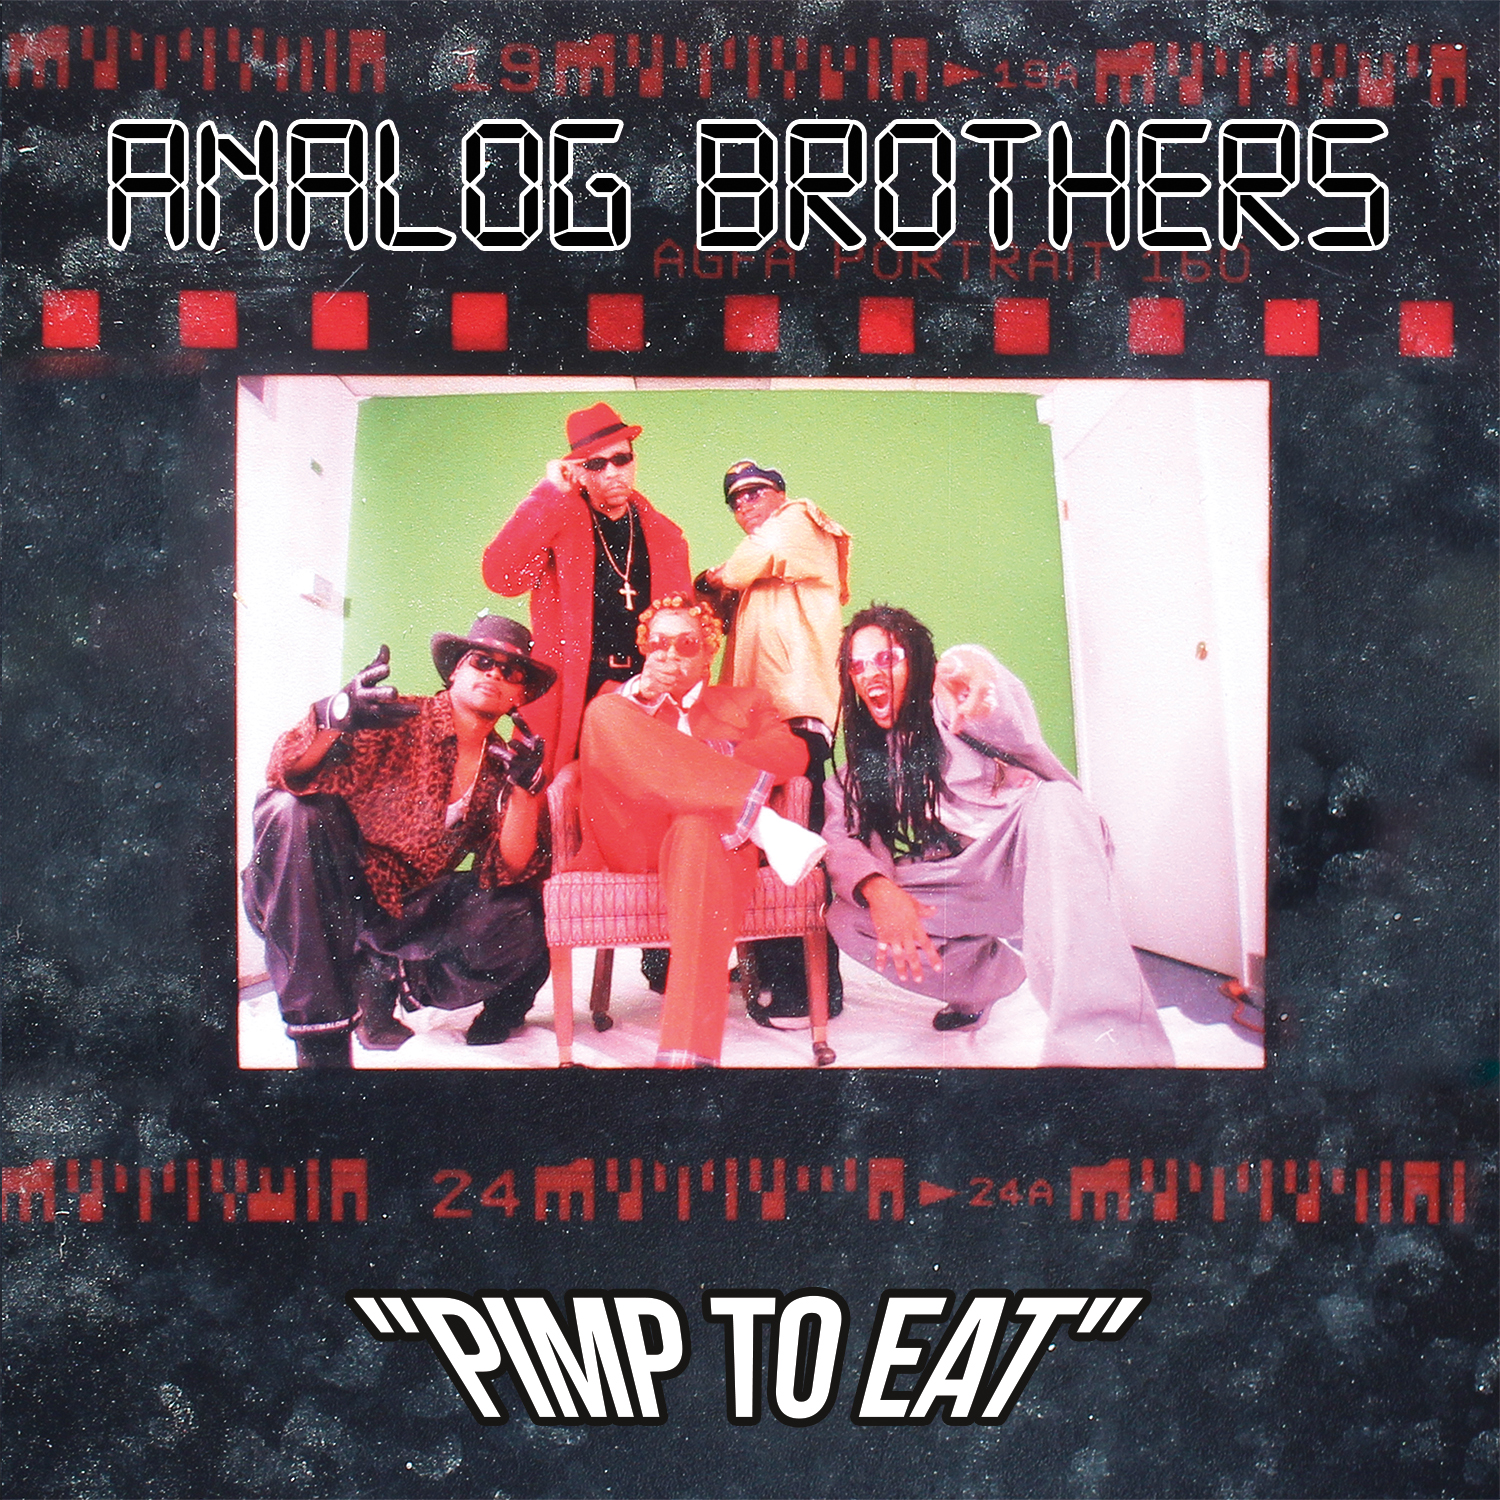 Analog Brothers Kool Keith